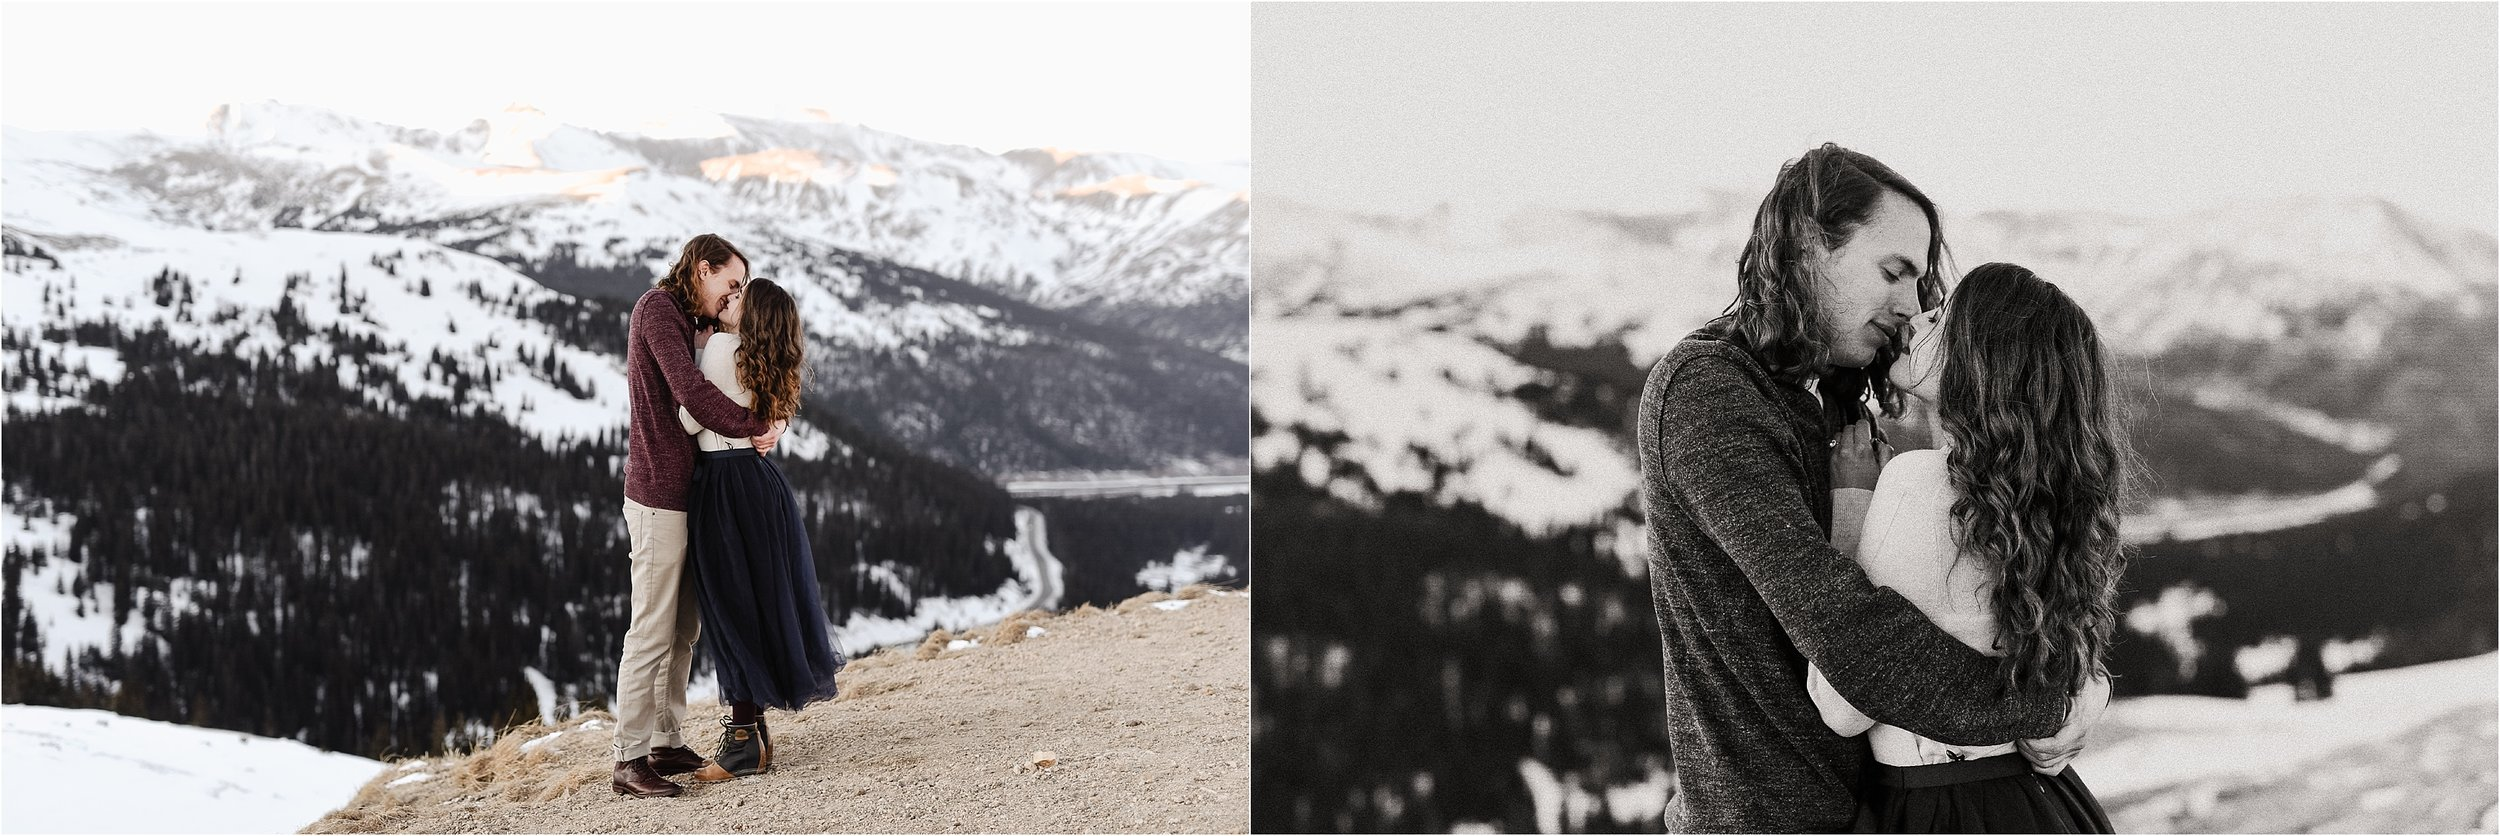 Loveland Pass, Colorado, Engagement Session Photos-20.jpg